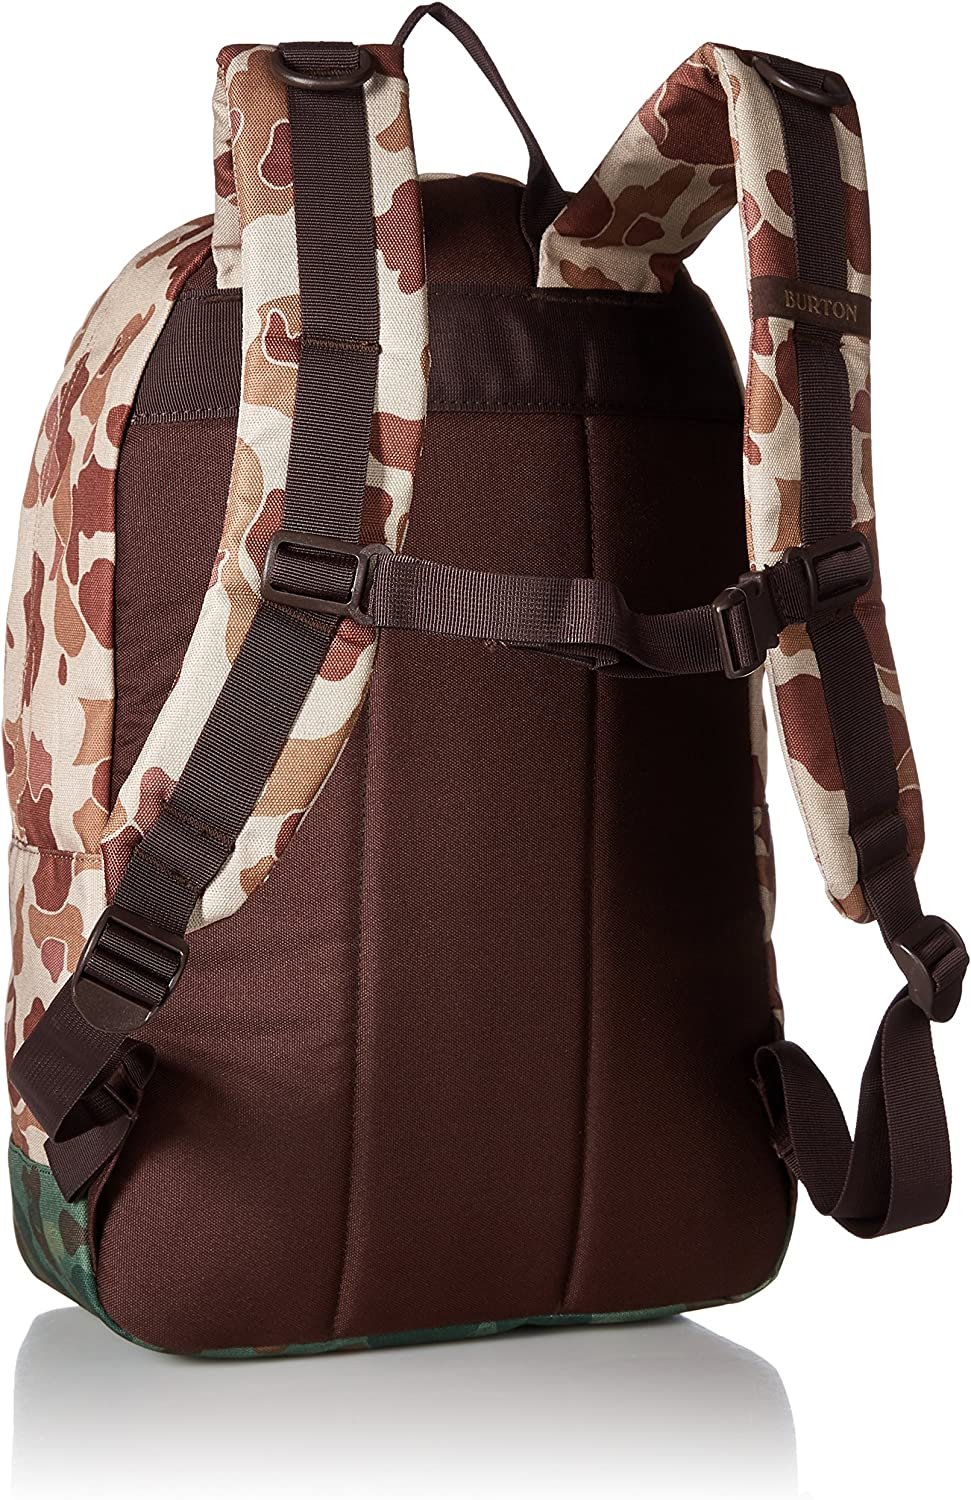 Classic School Pack Laptop Pocket Burton Kettle Backpack